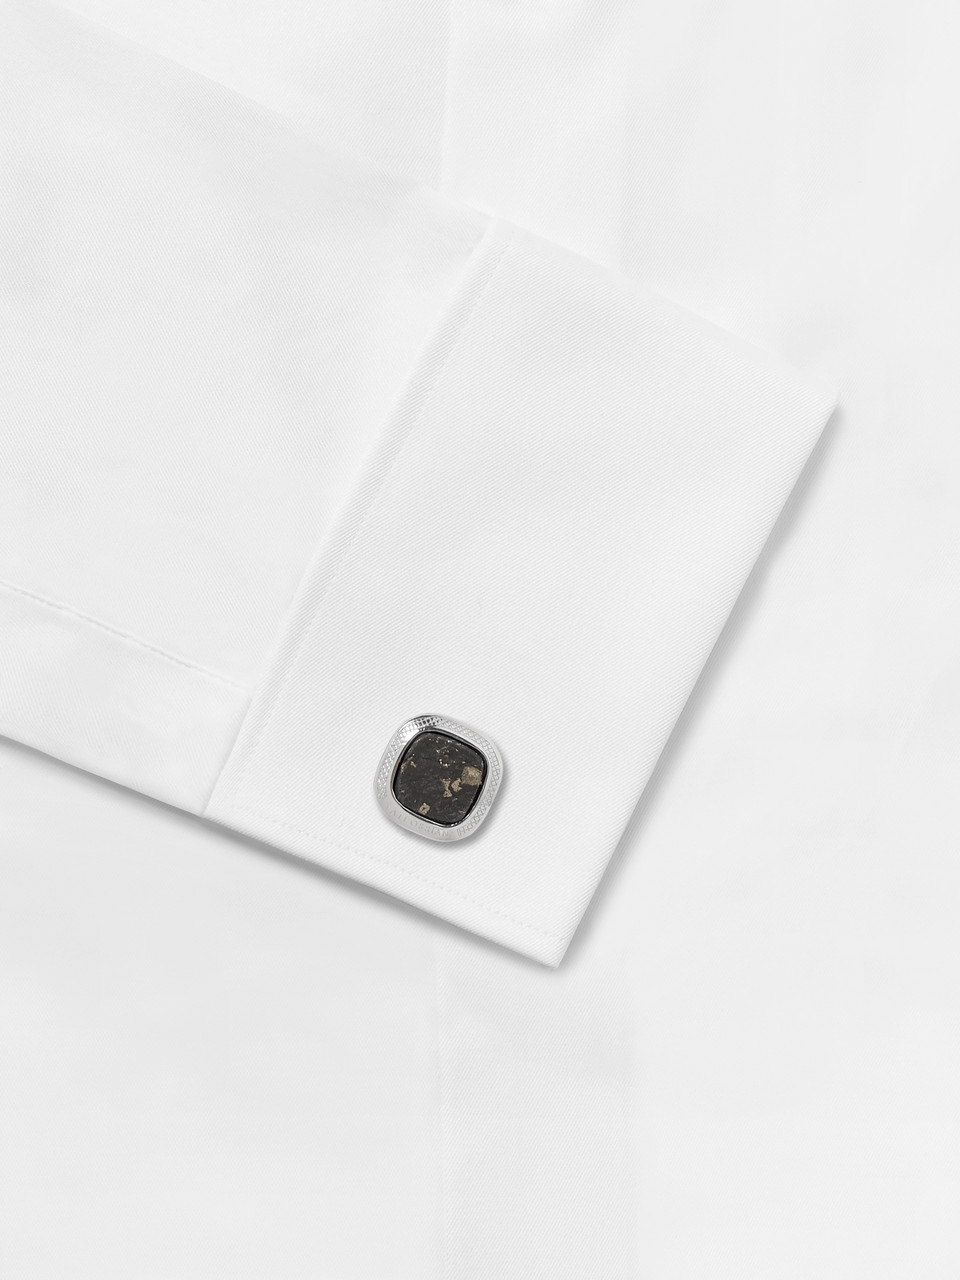 TATEOSSIAN Rhodium-Plated, Slate and Pyrite Cufflinks